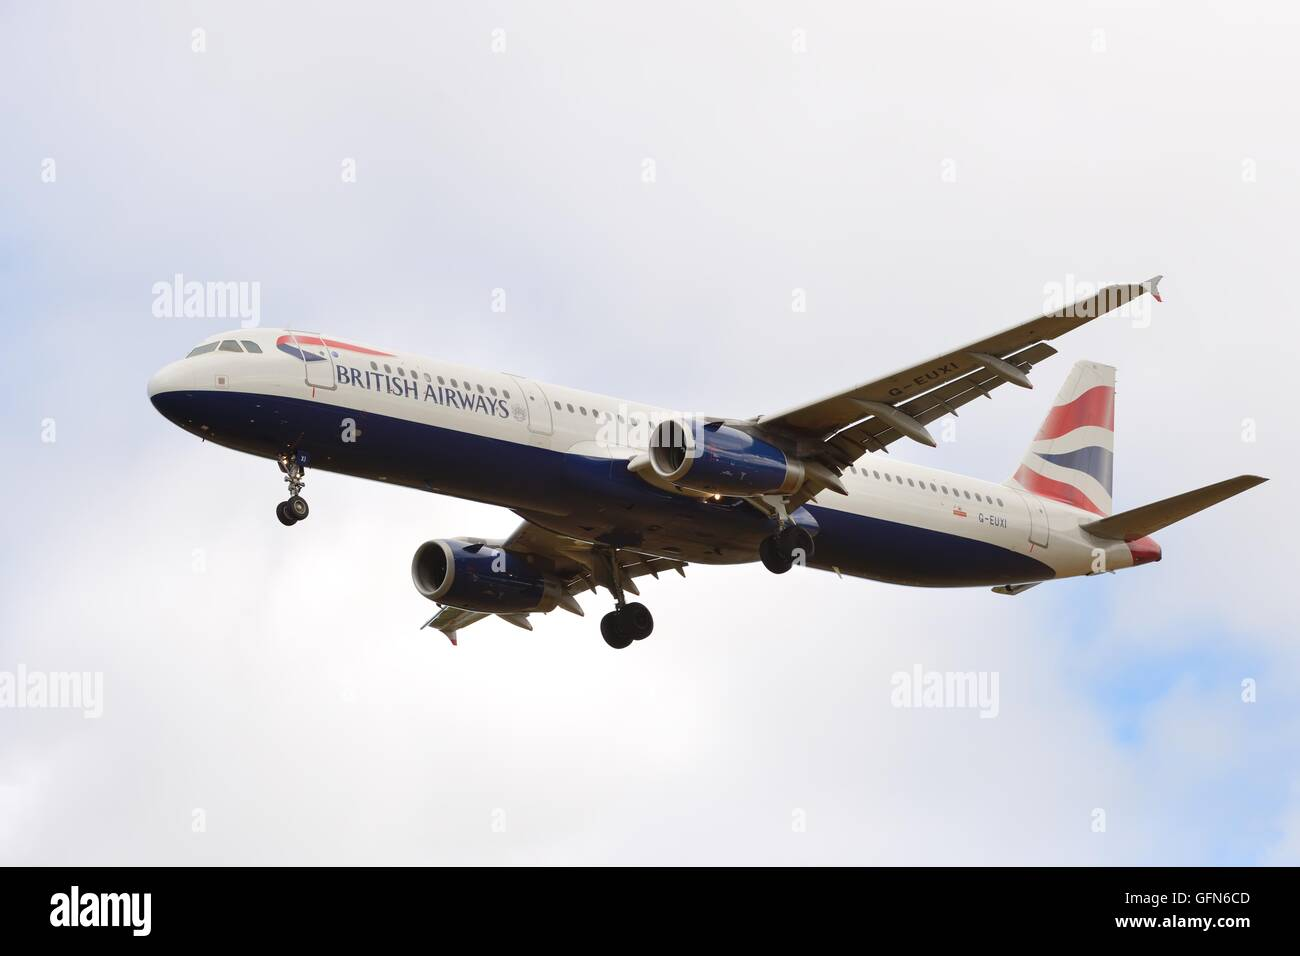 A British Airways Airbus A321 on final approach to the airfield in Glasgow, Scotland, UK - Stock Image